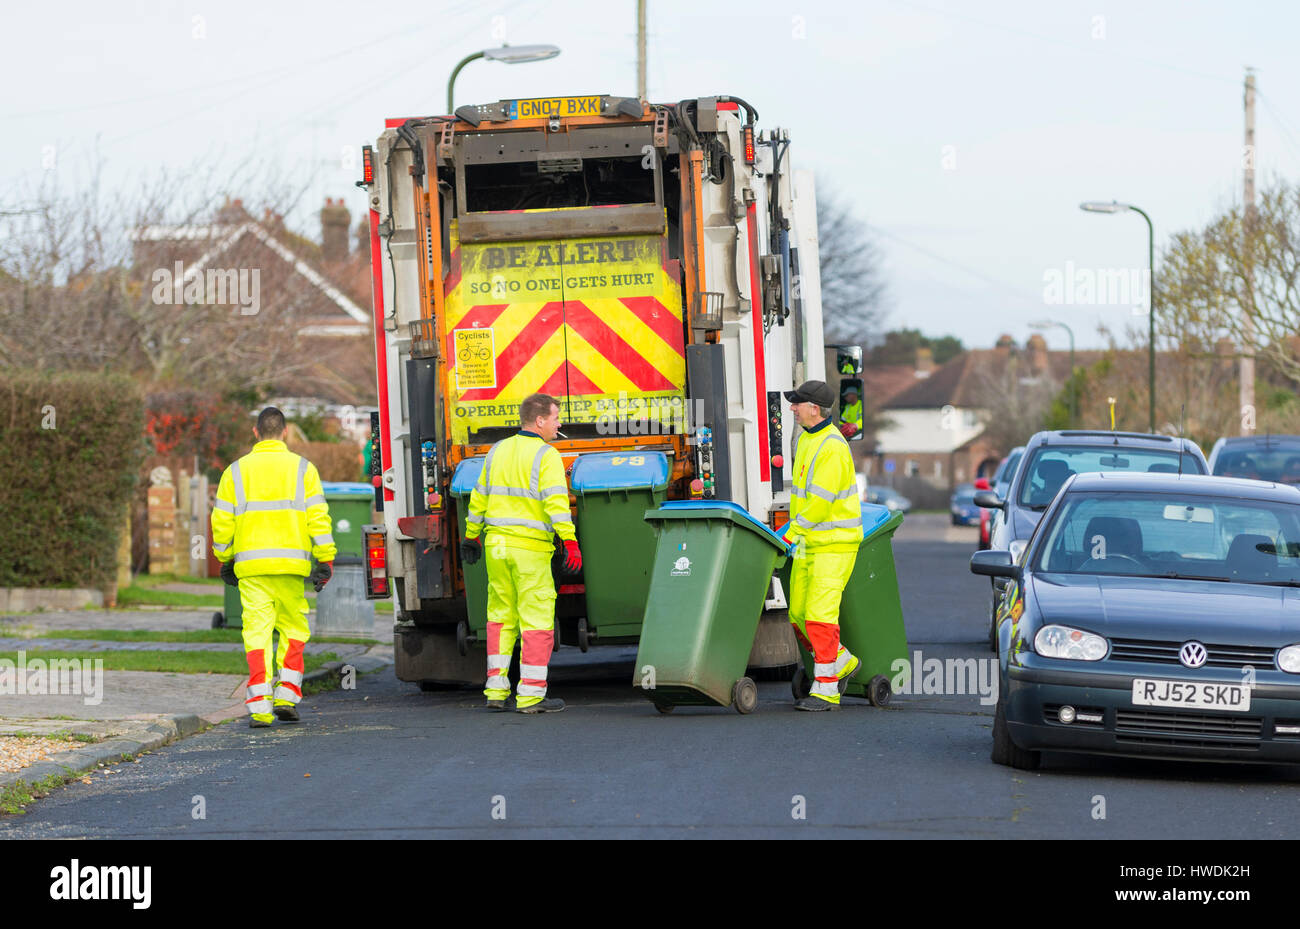 Several dustmen with a dustcart collecting rubbish on bin day in the South of England, UK. - Stock Image